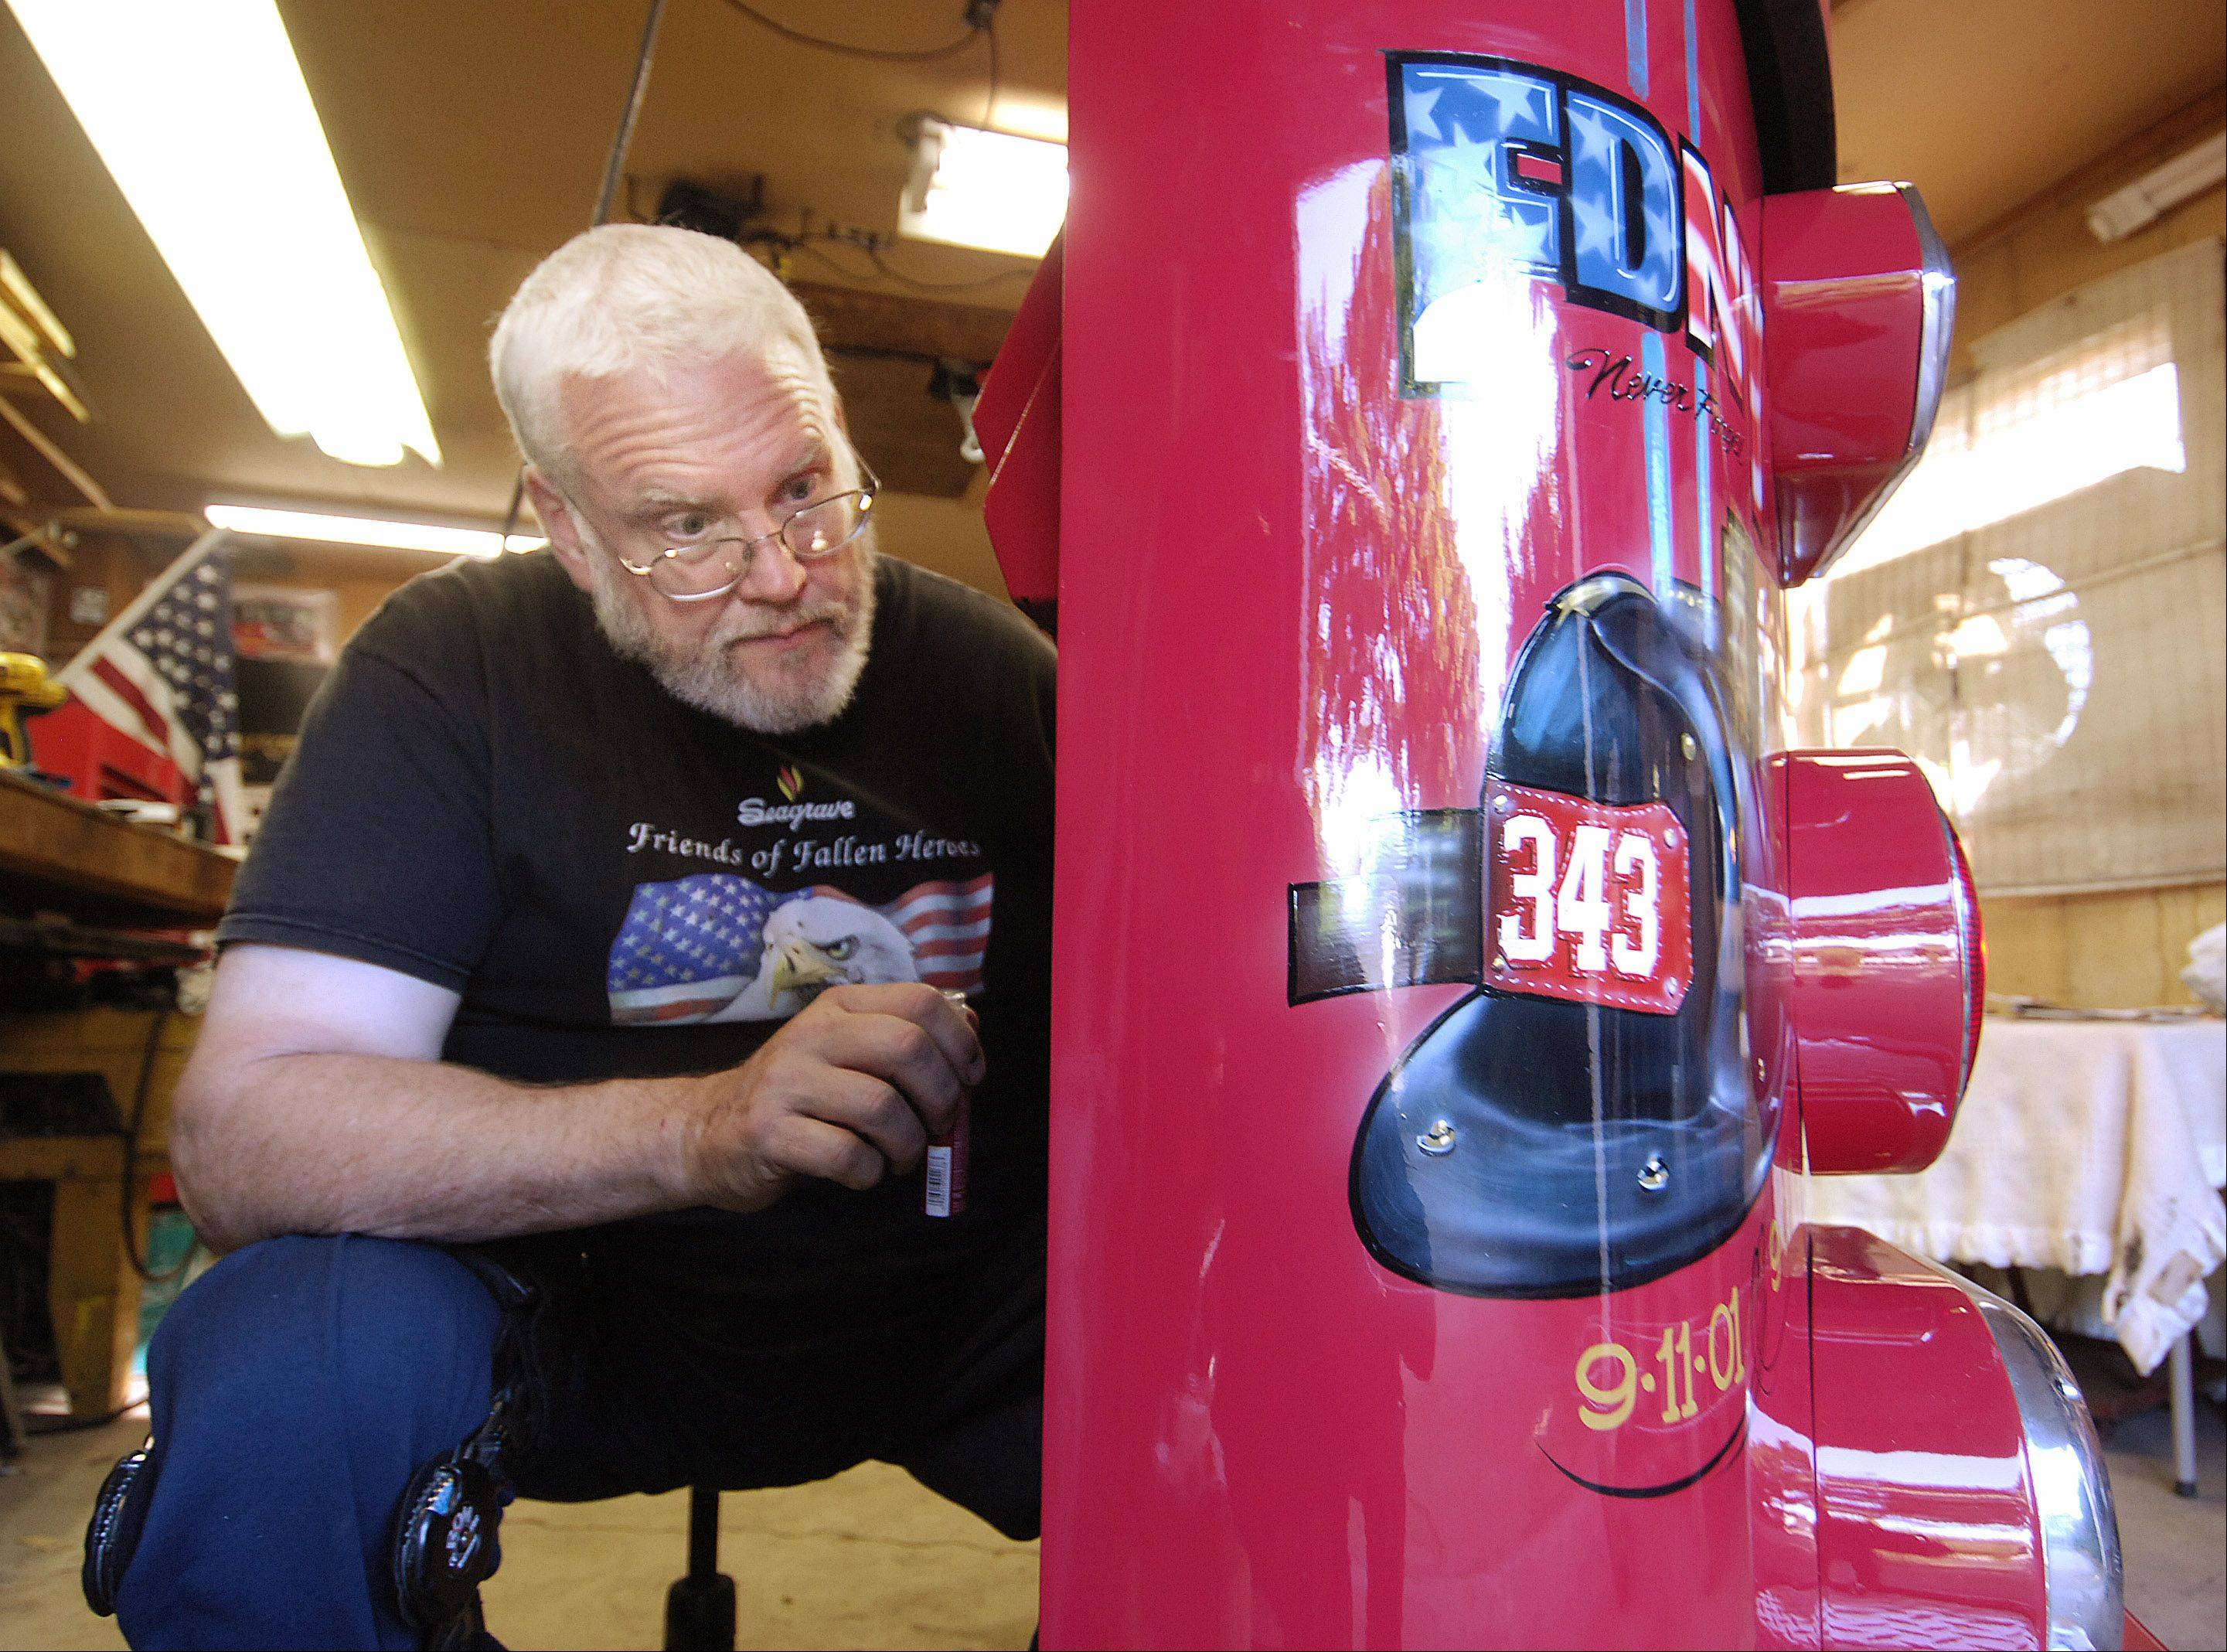 Elgin firefighter restores old firetruck as a gift for NYC colleagues